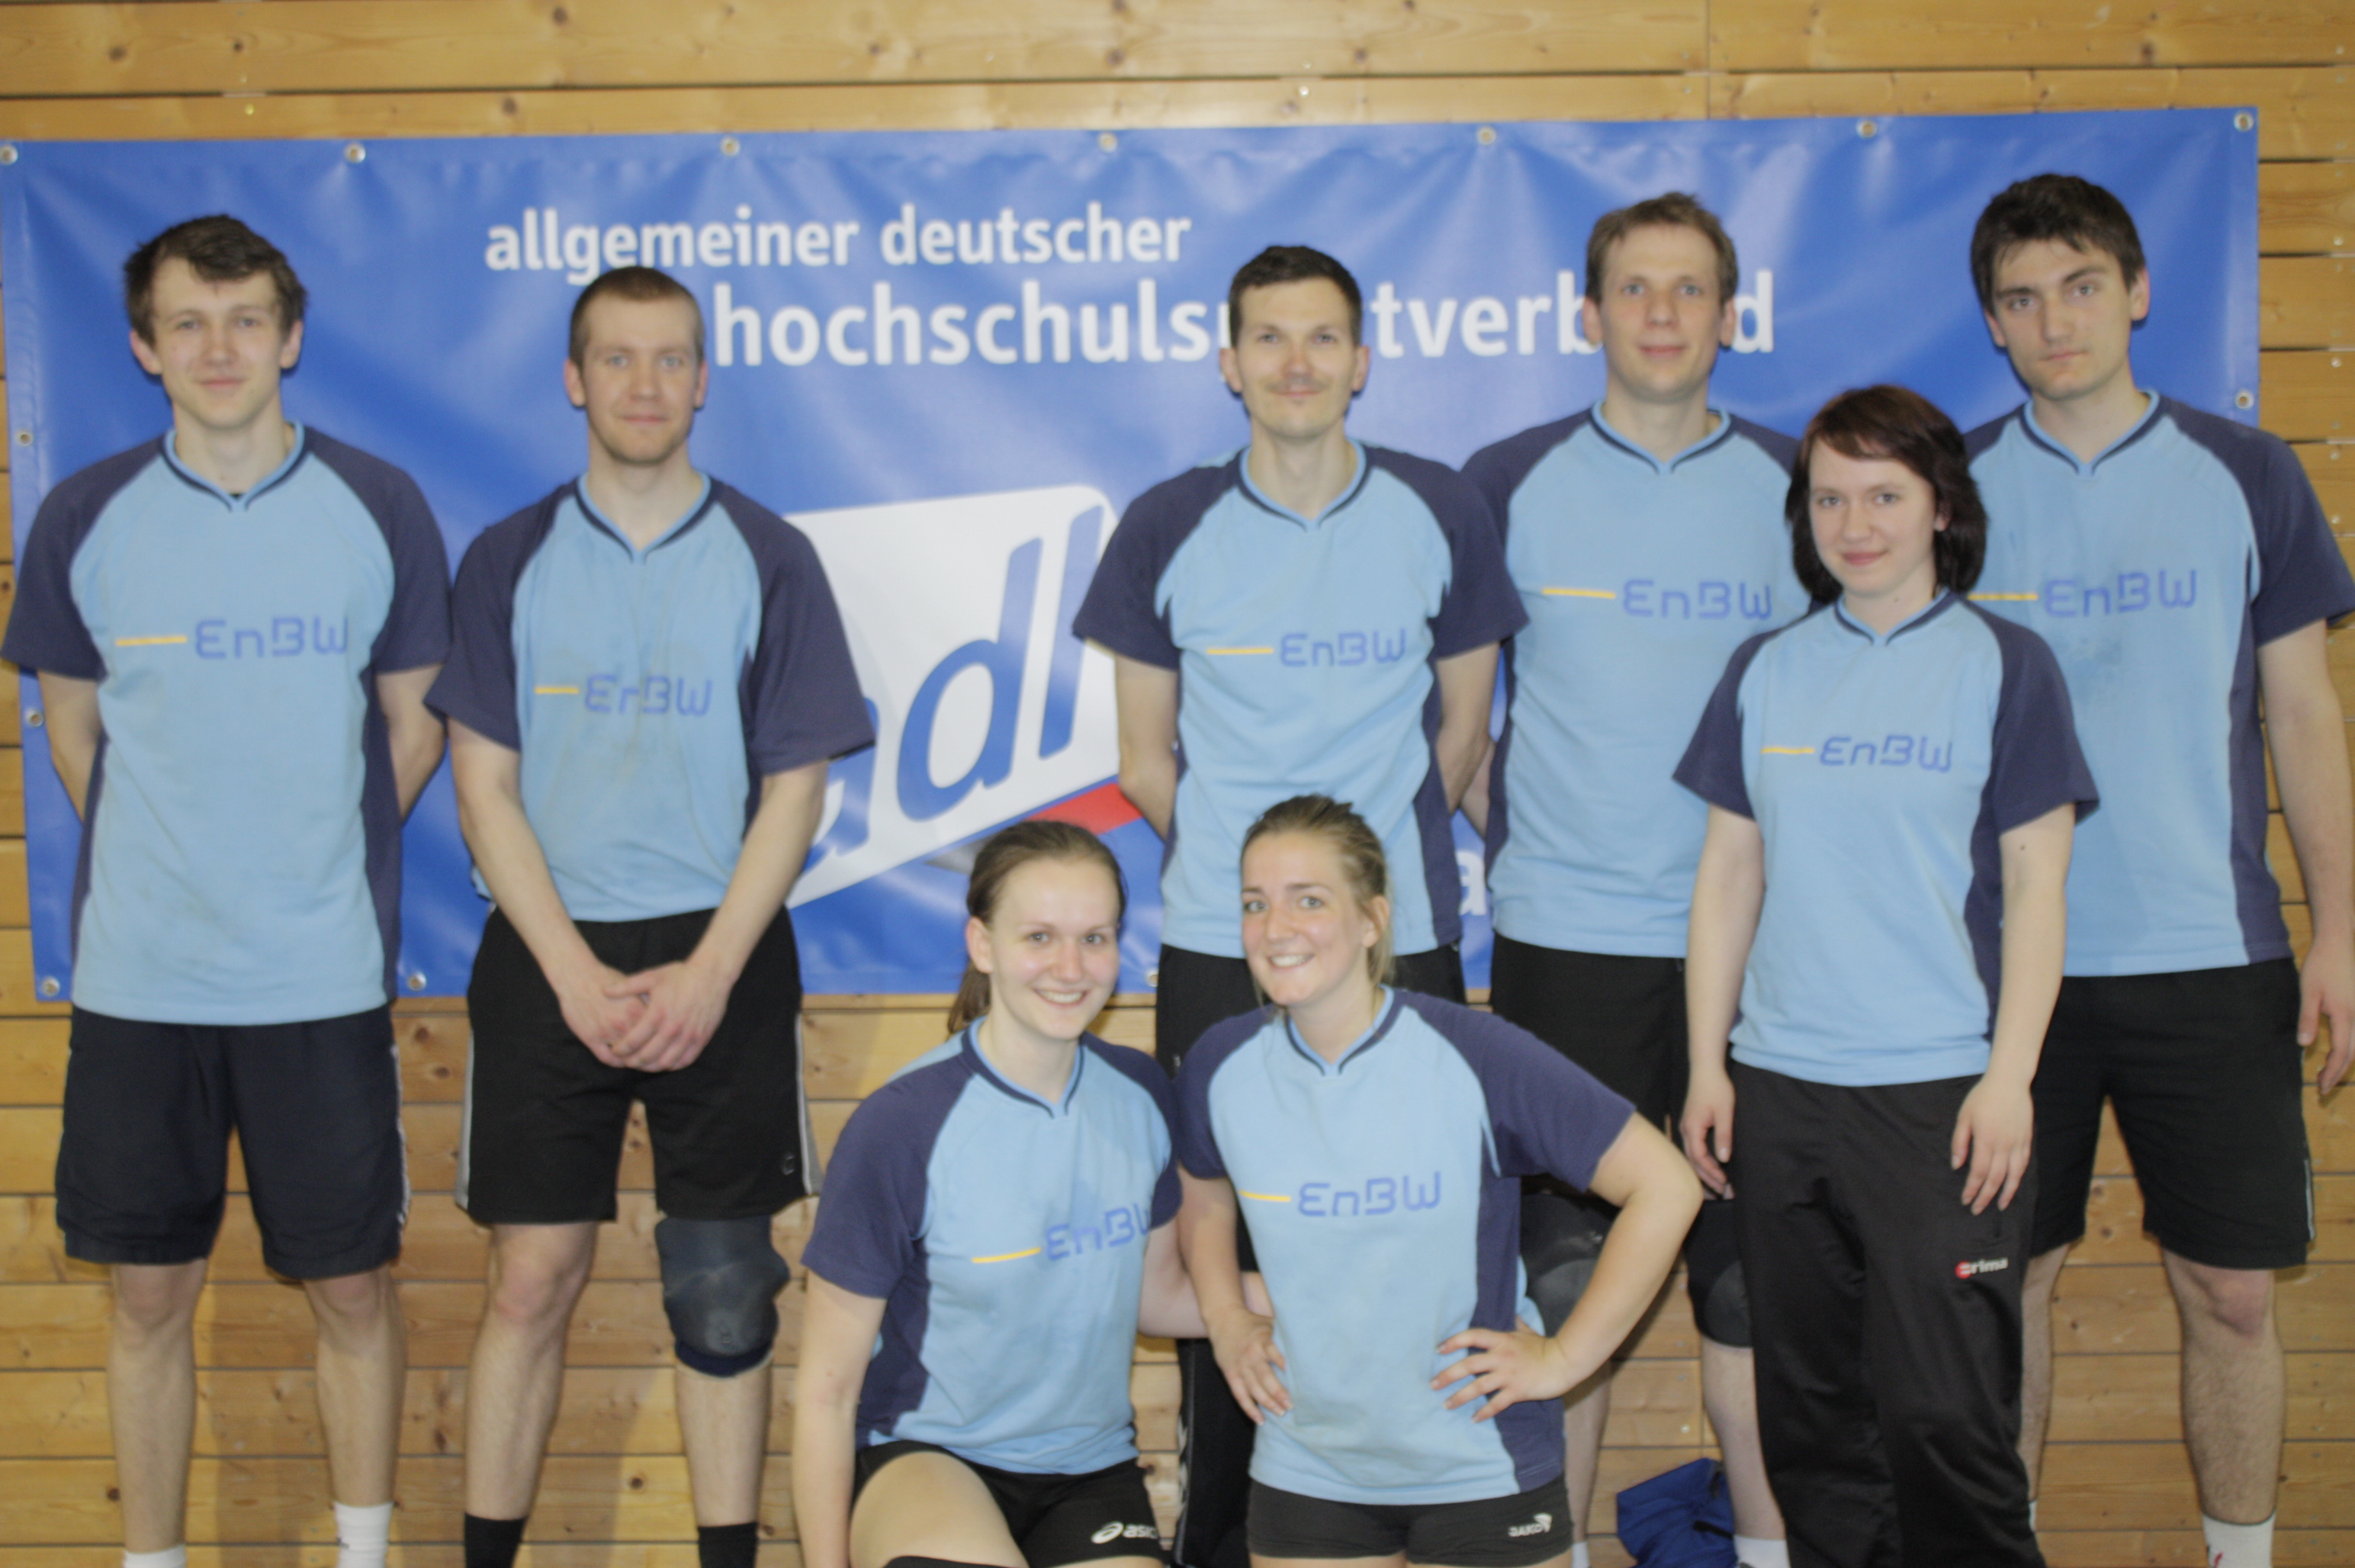 dhp mixed cottbus 42 20130528 1428777675